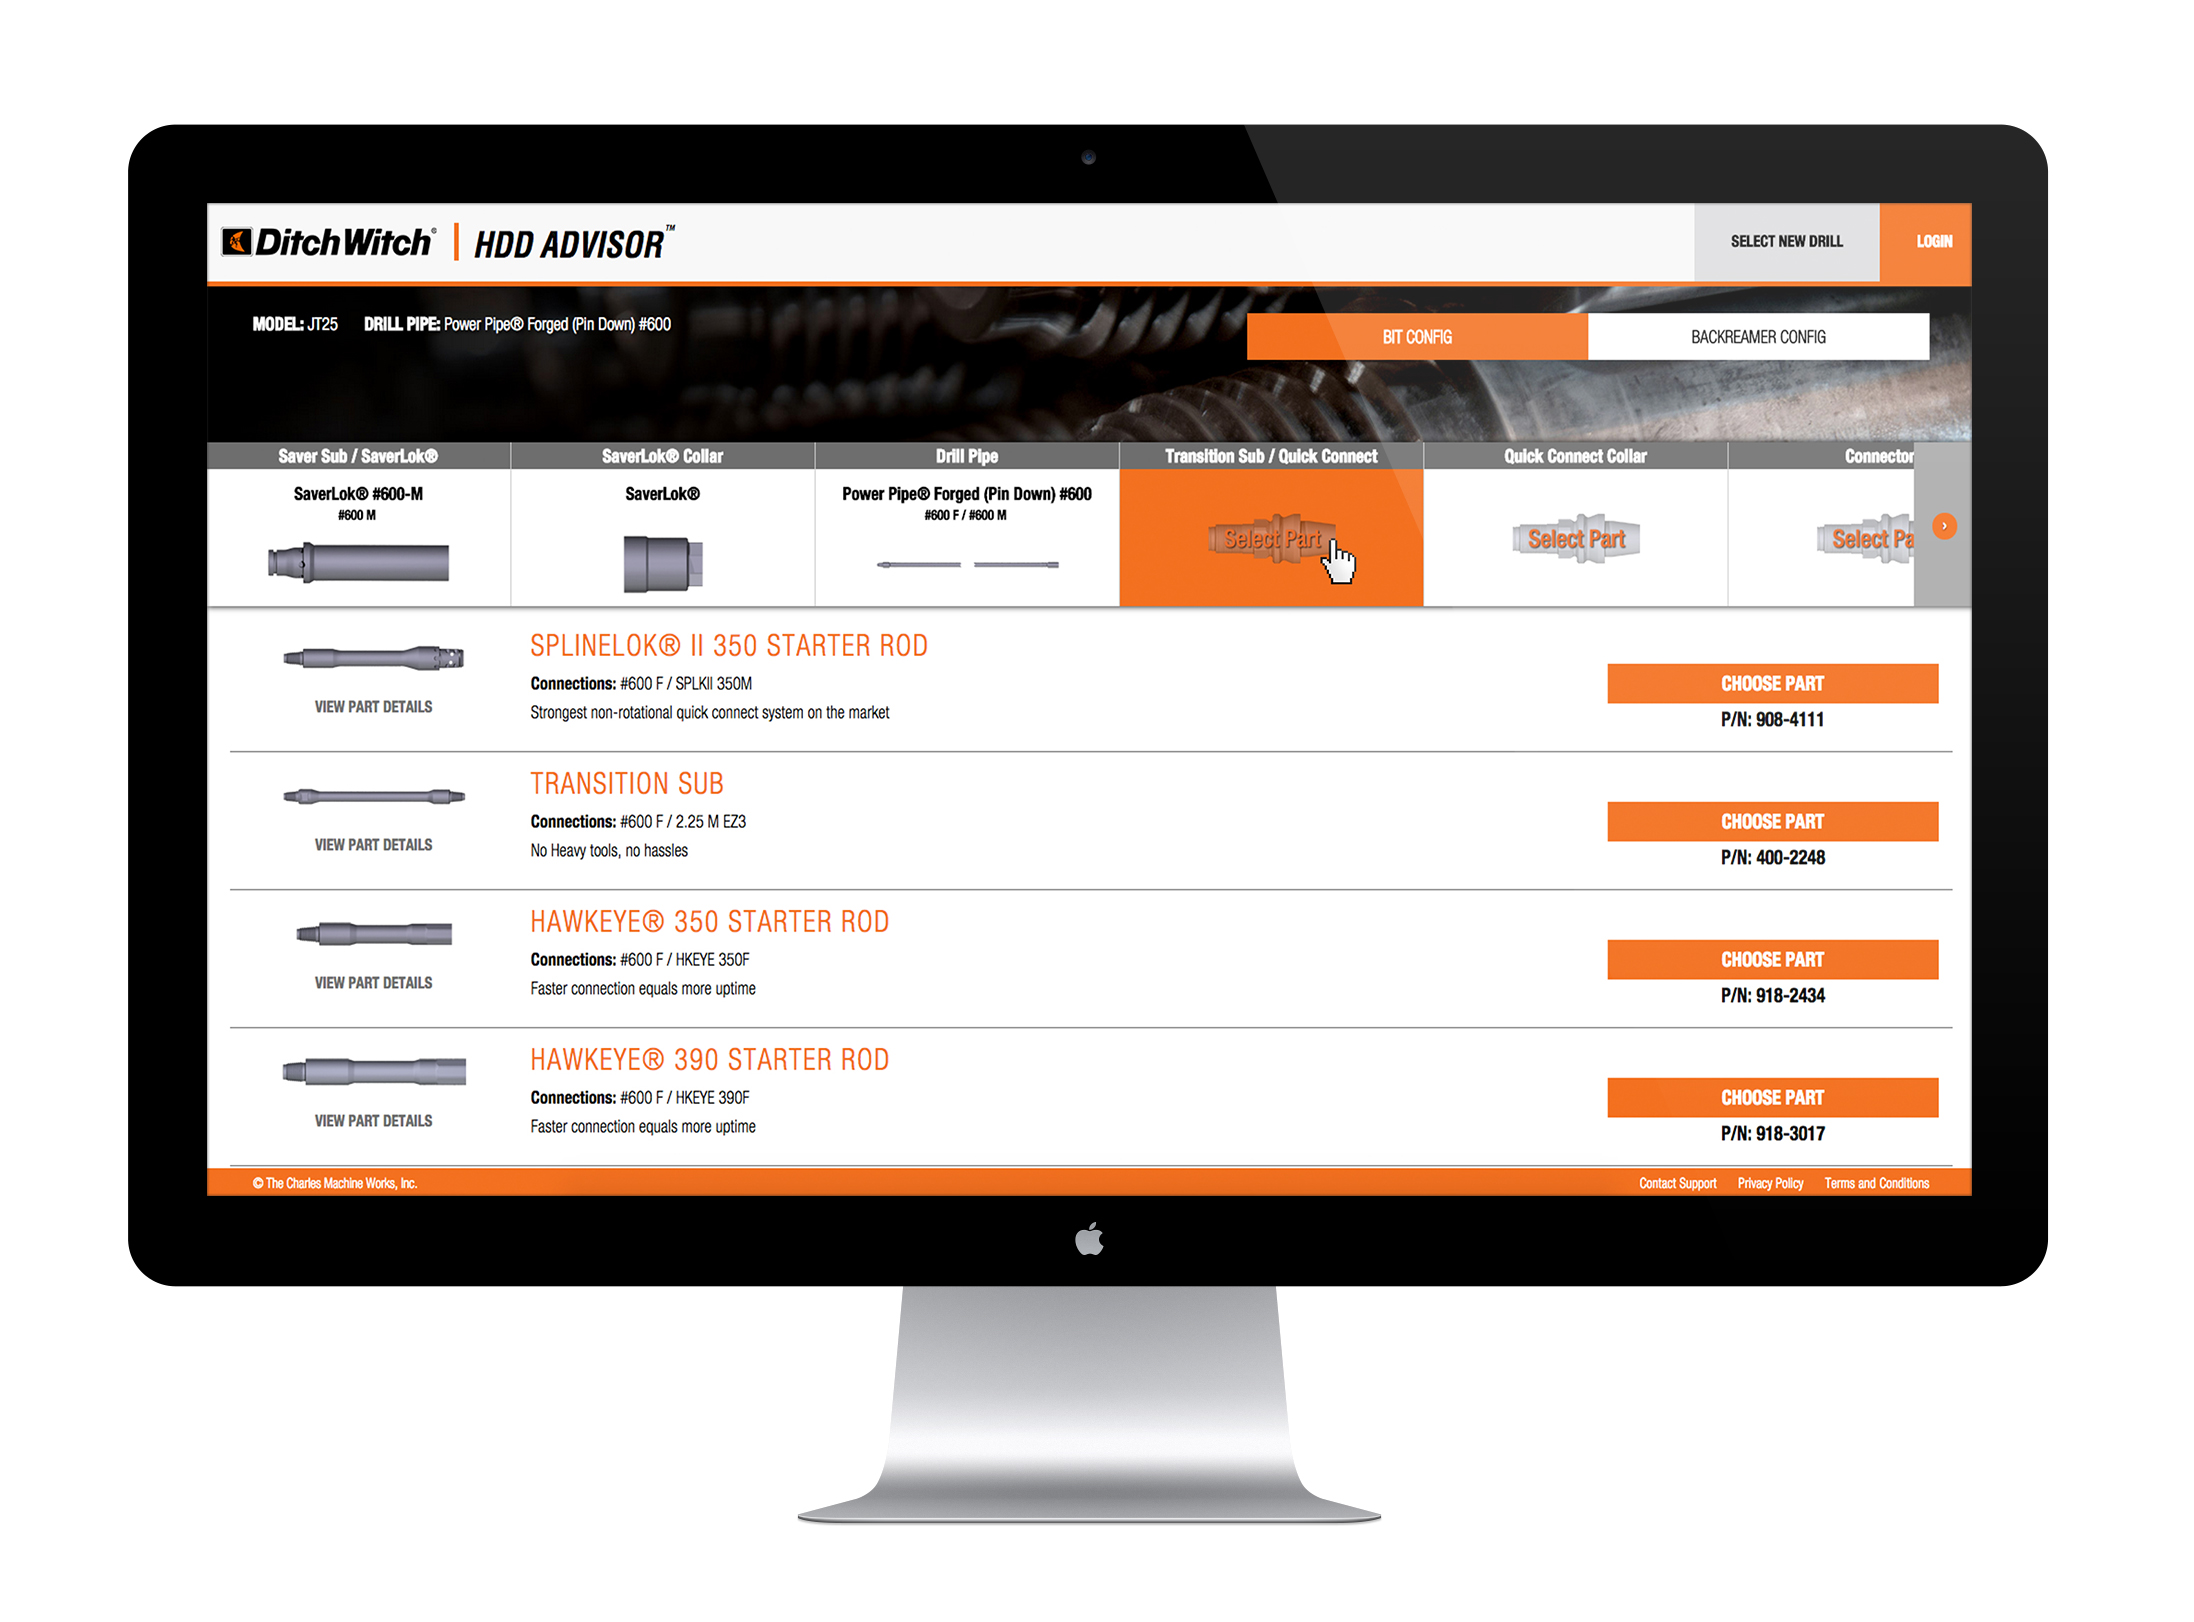 Ditch Witch Equipment Productivity Tools on